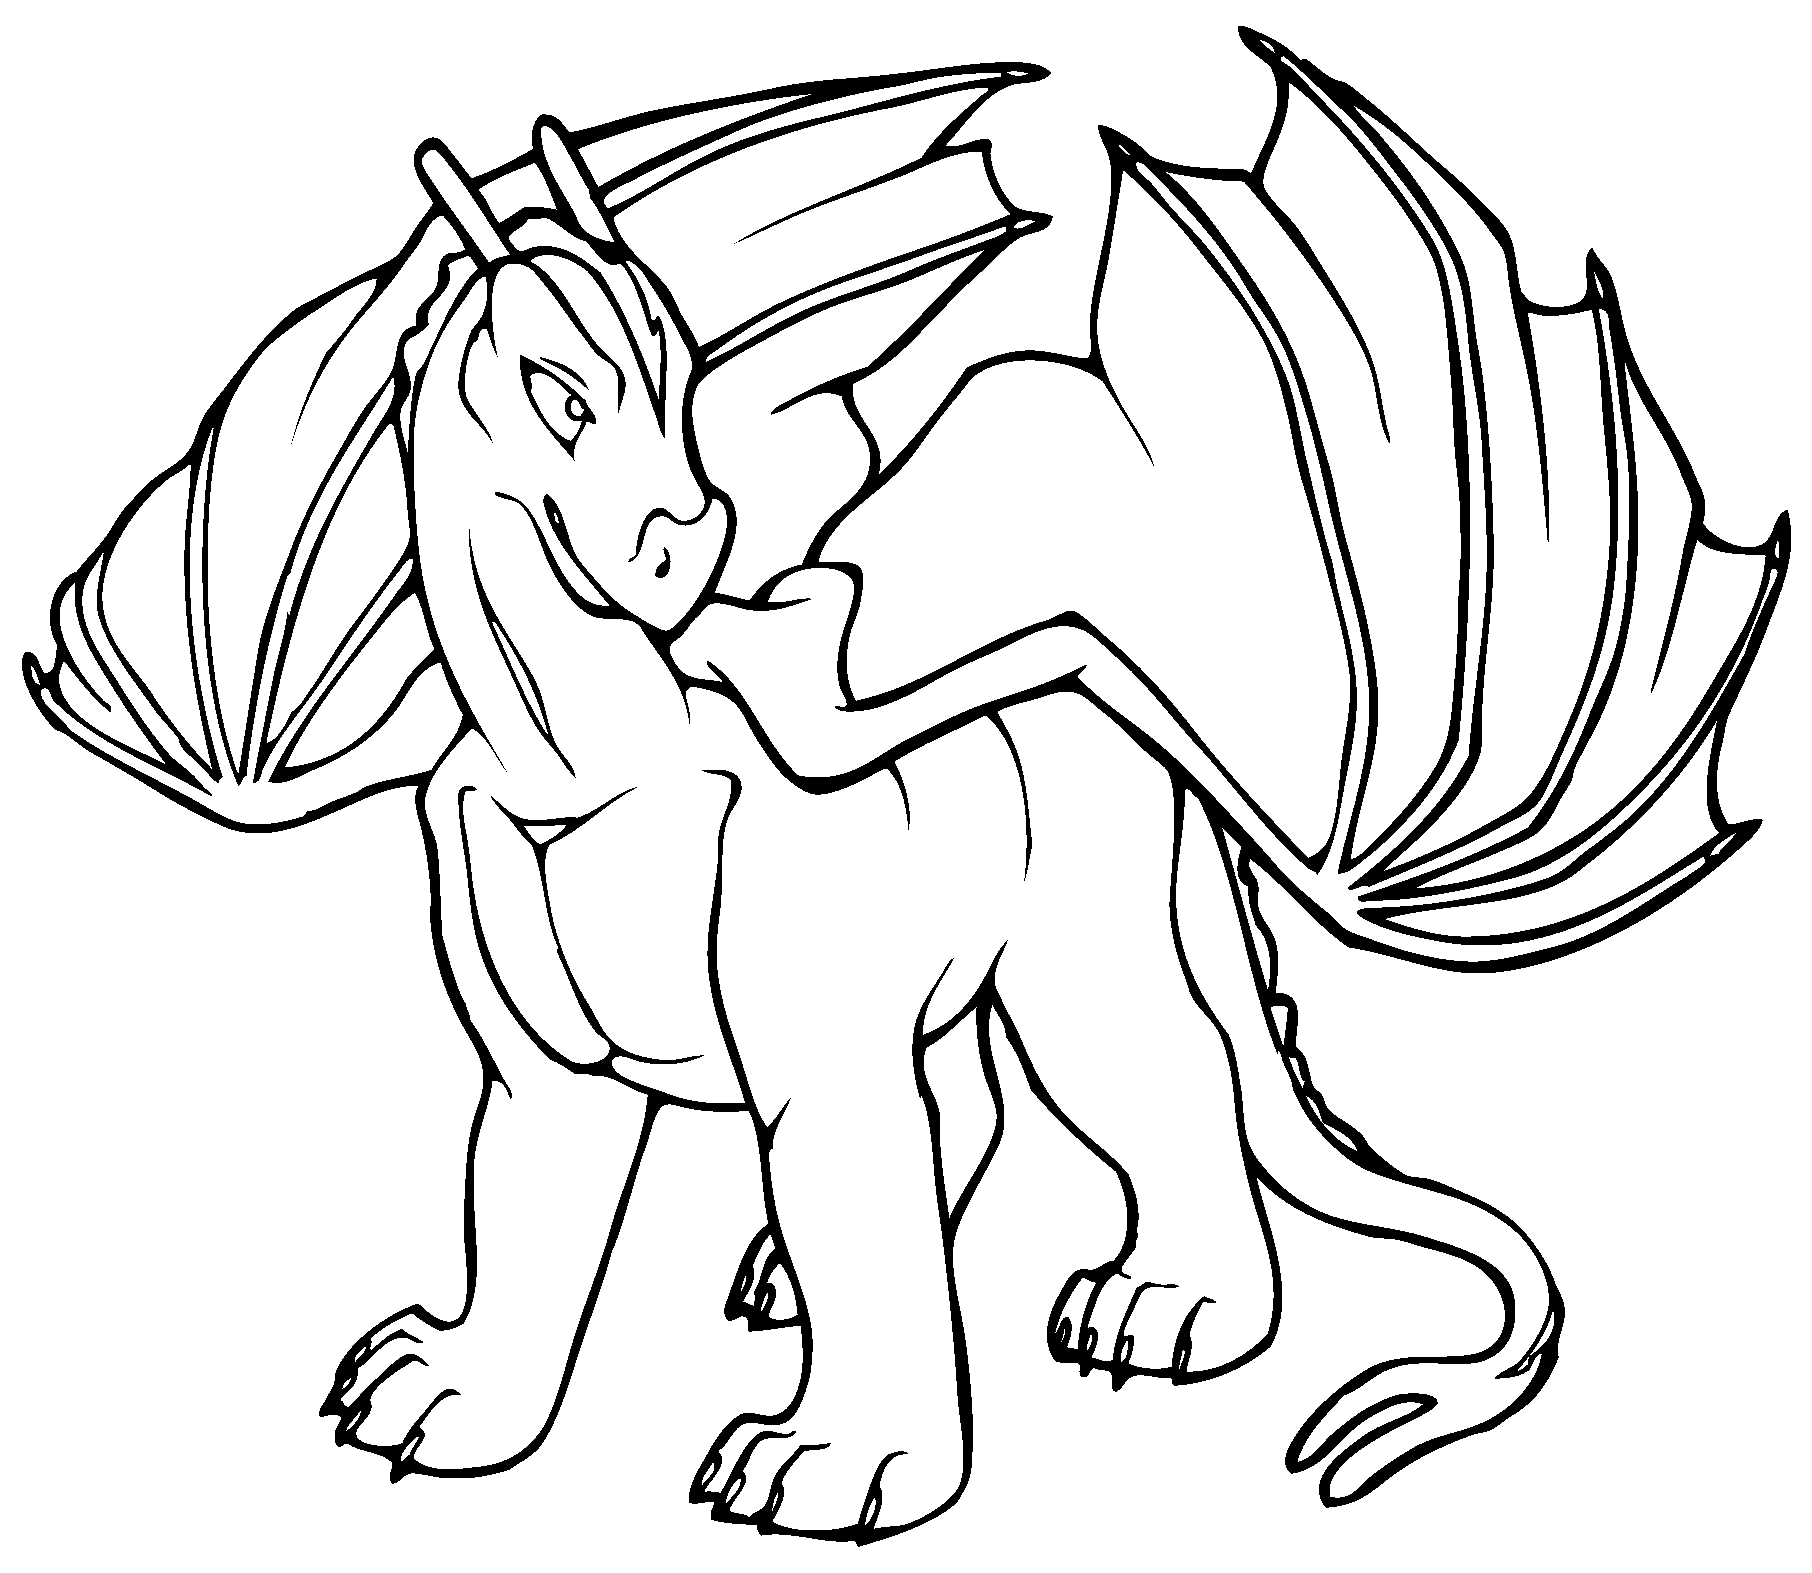 Free Printable Dragon Coloring Pages For Kids Dragon Coloring Page Unicorn Coloring Pages Cute Coloring Pages